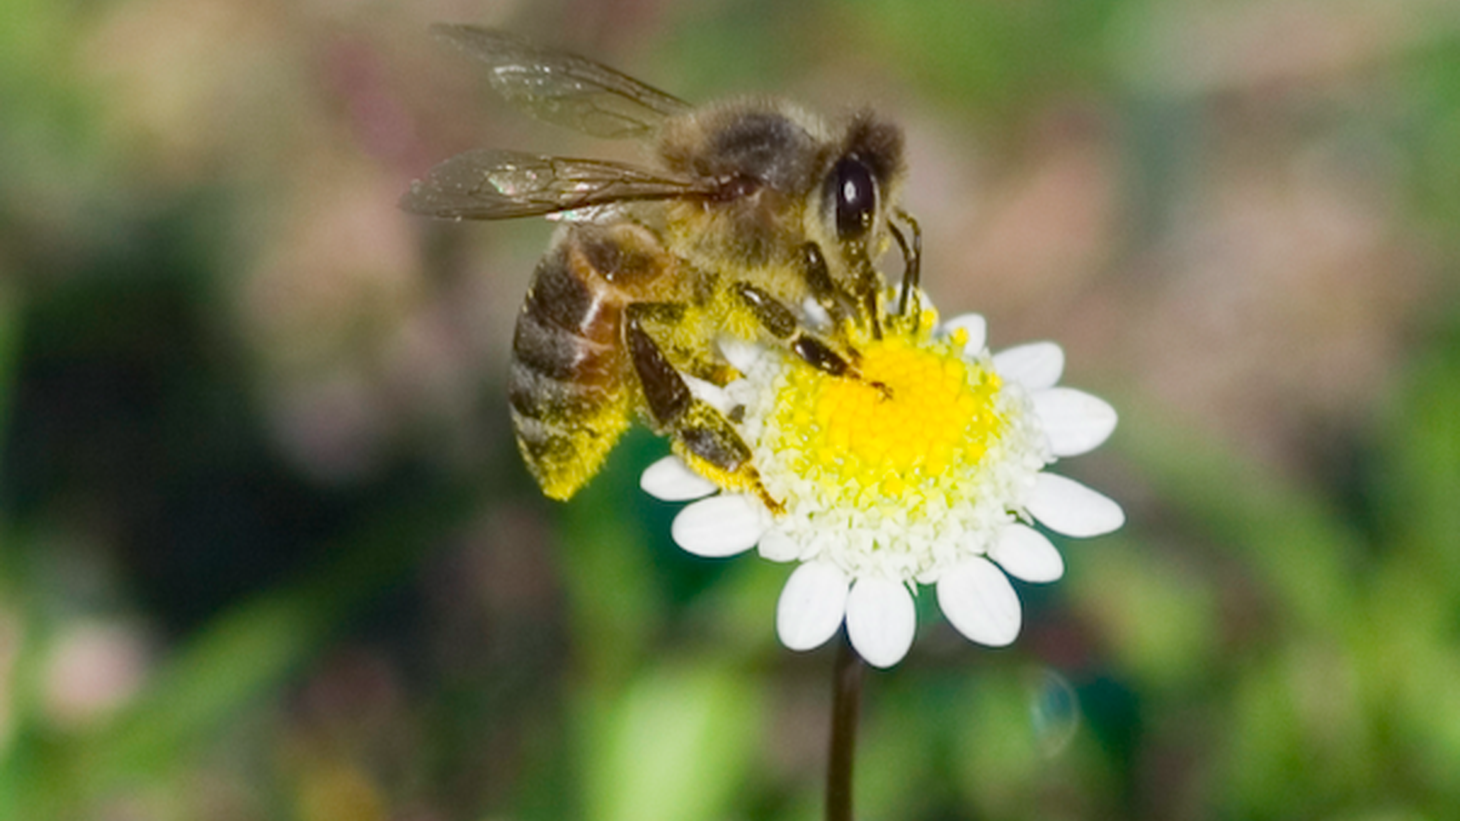 Much of the food we eat -- fruit, vegetables, nuts -- are all pollinated by bees. But bees are dying, and their hives are disappearing. Bees now have to be sent around the country to pollinate crops.